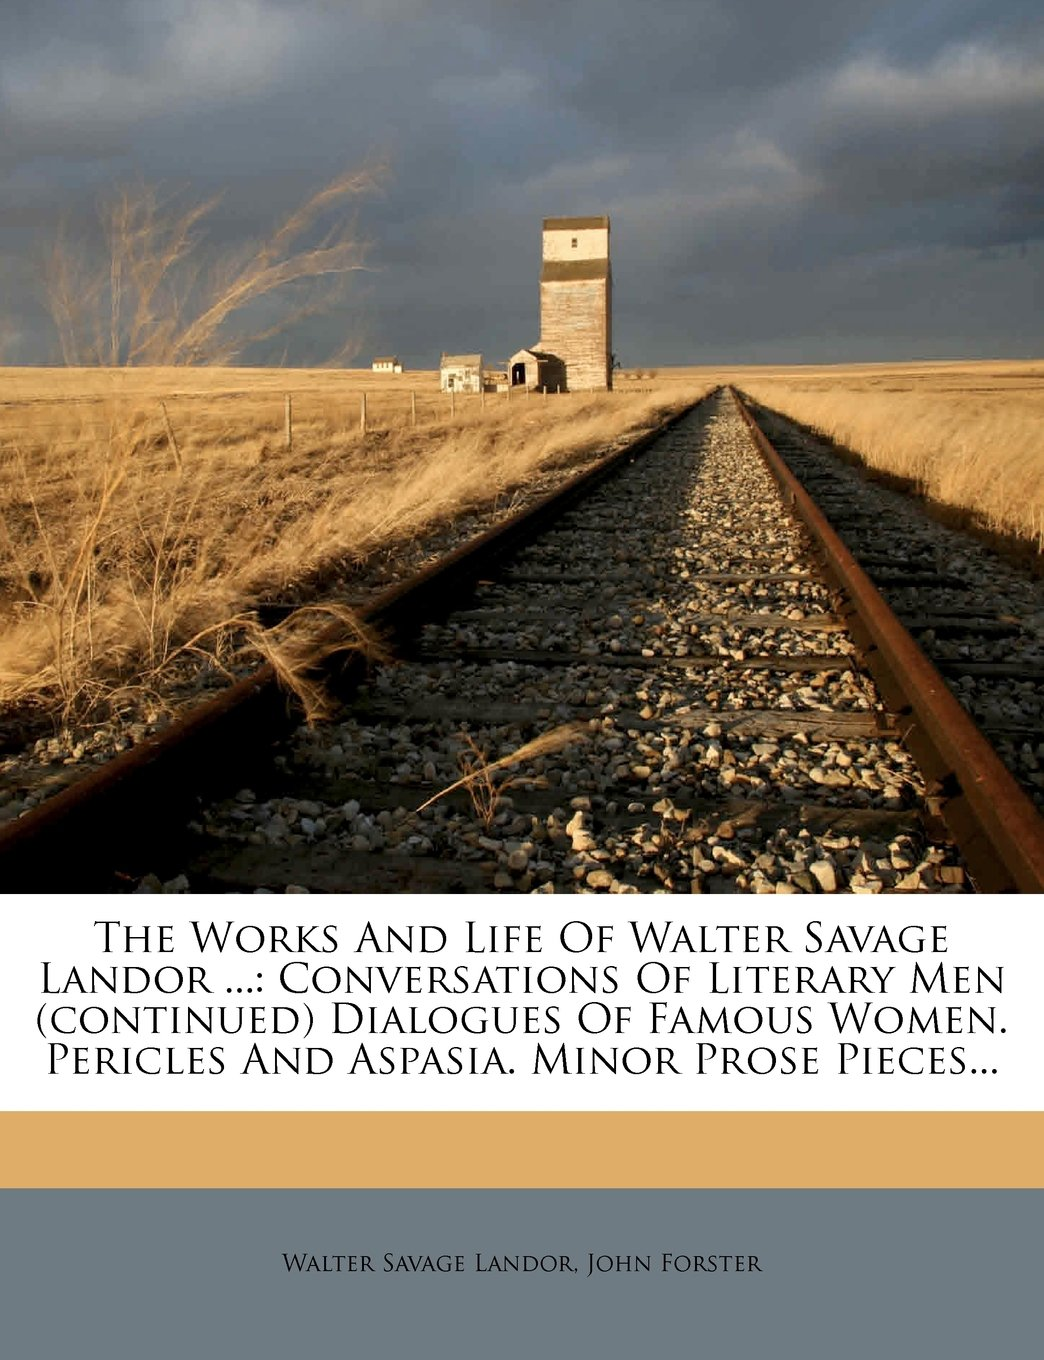 Download The Works And Life Of Walter Savage Landor ...: Conversations Of Literary Men (continued) Dialogues Of Famous Women. Pericles And Aspasia. Minor Prose Pieces... PDF